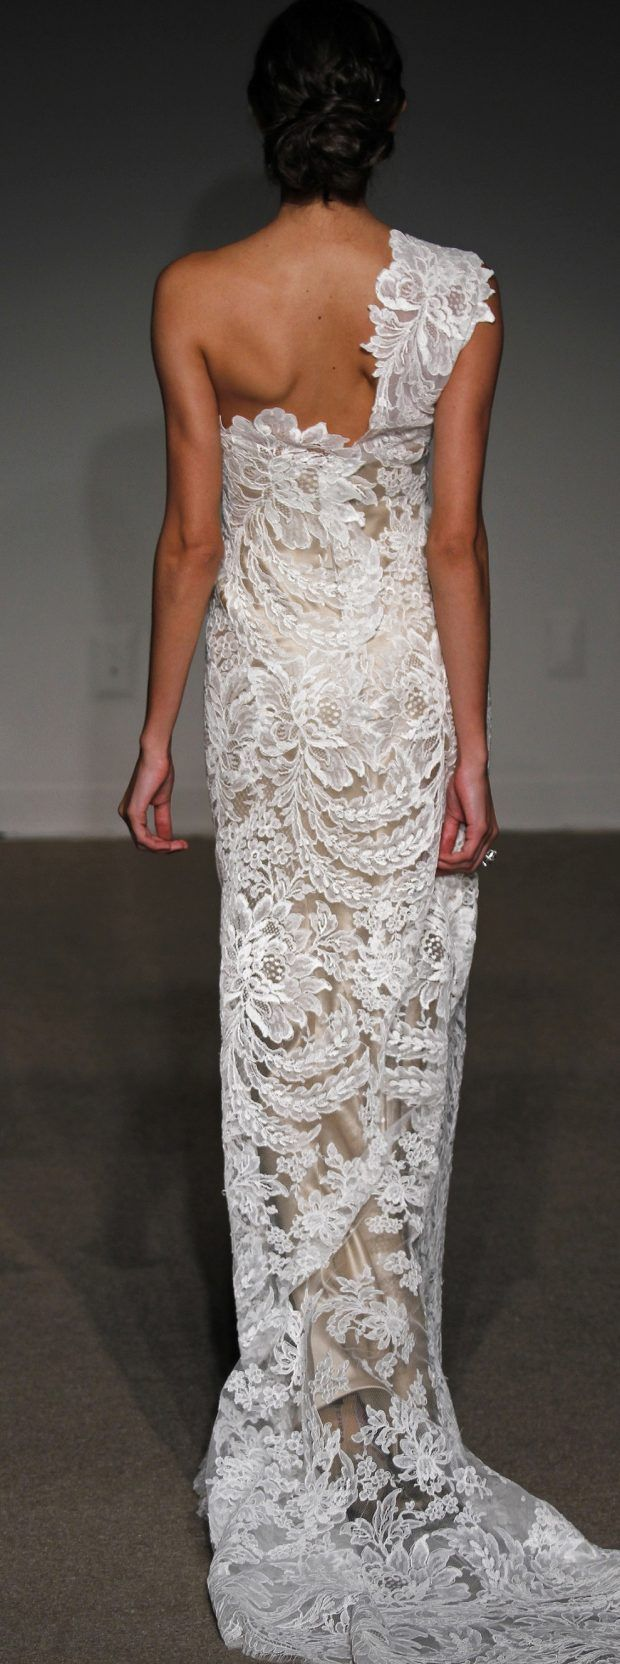 Anna maier bridal wedding dresses are committed to the founding